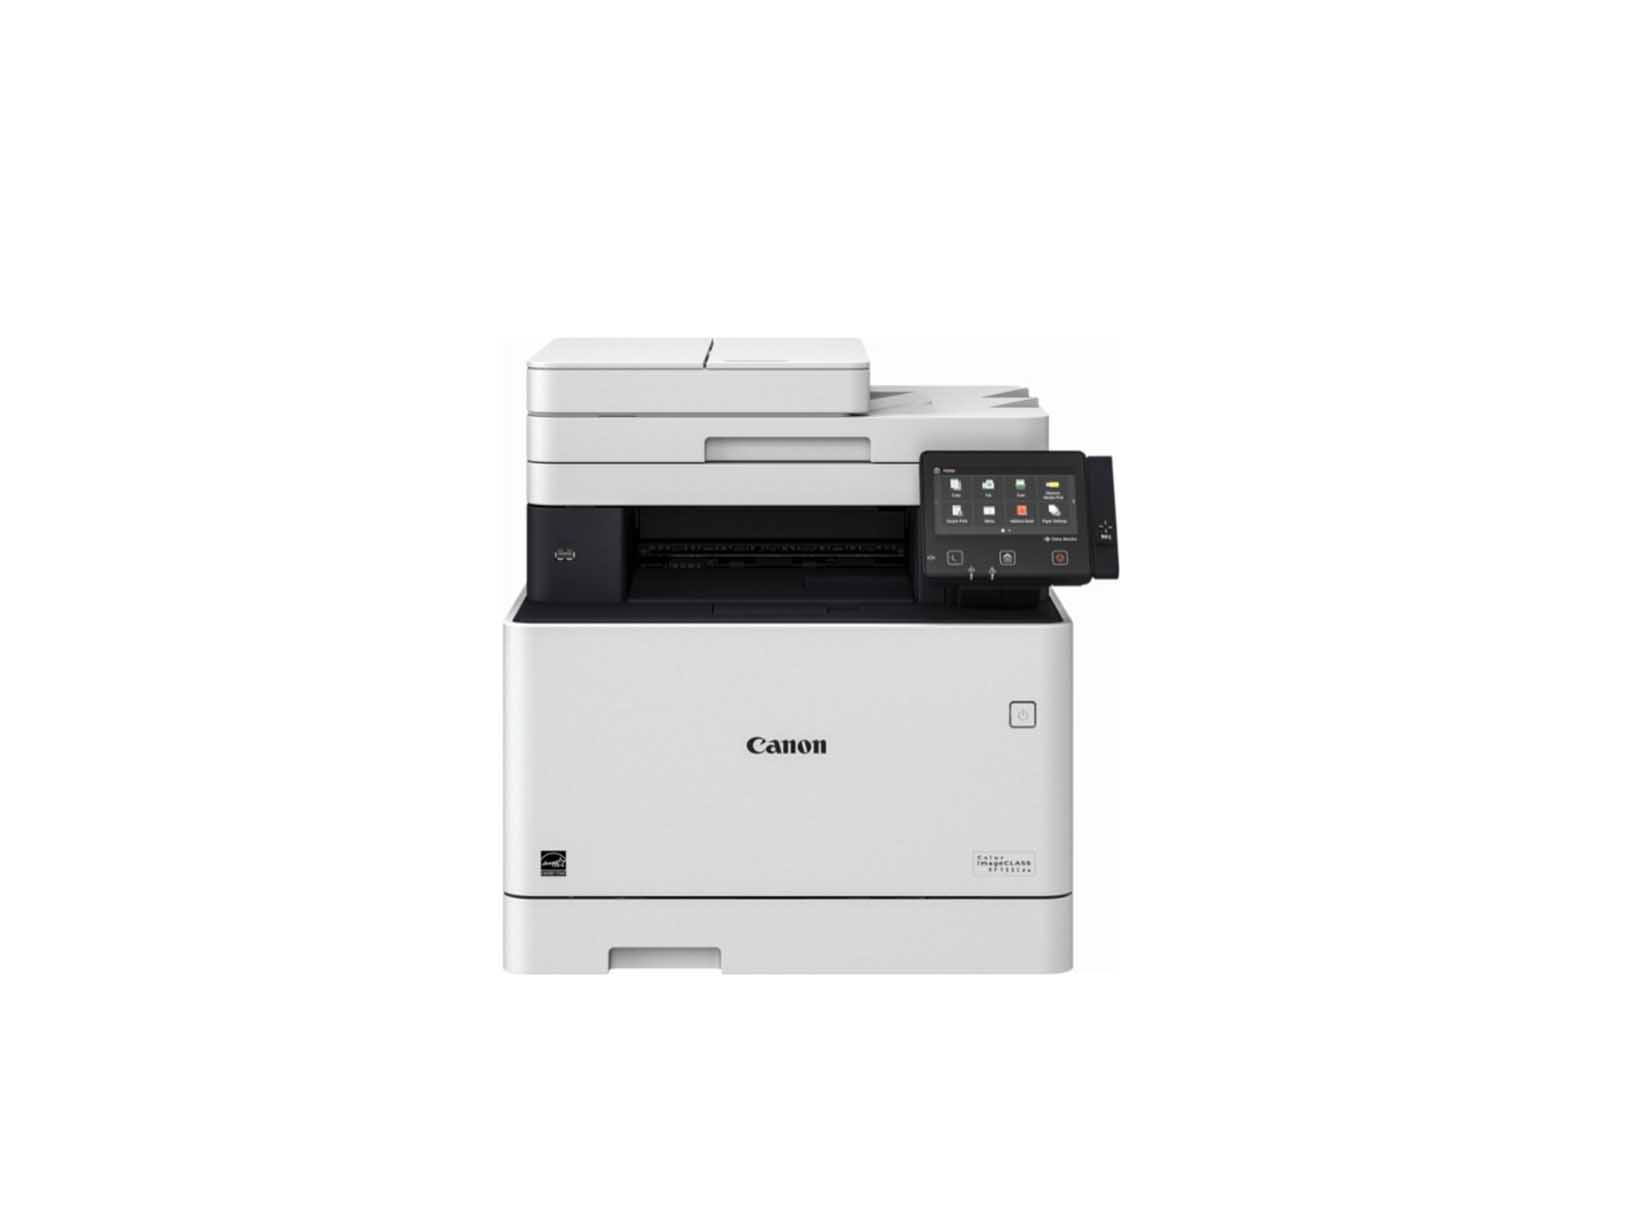 Canon Color imageCLASS MF733Cdw Wireless Color AllInOne Printer